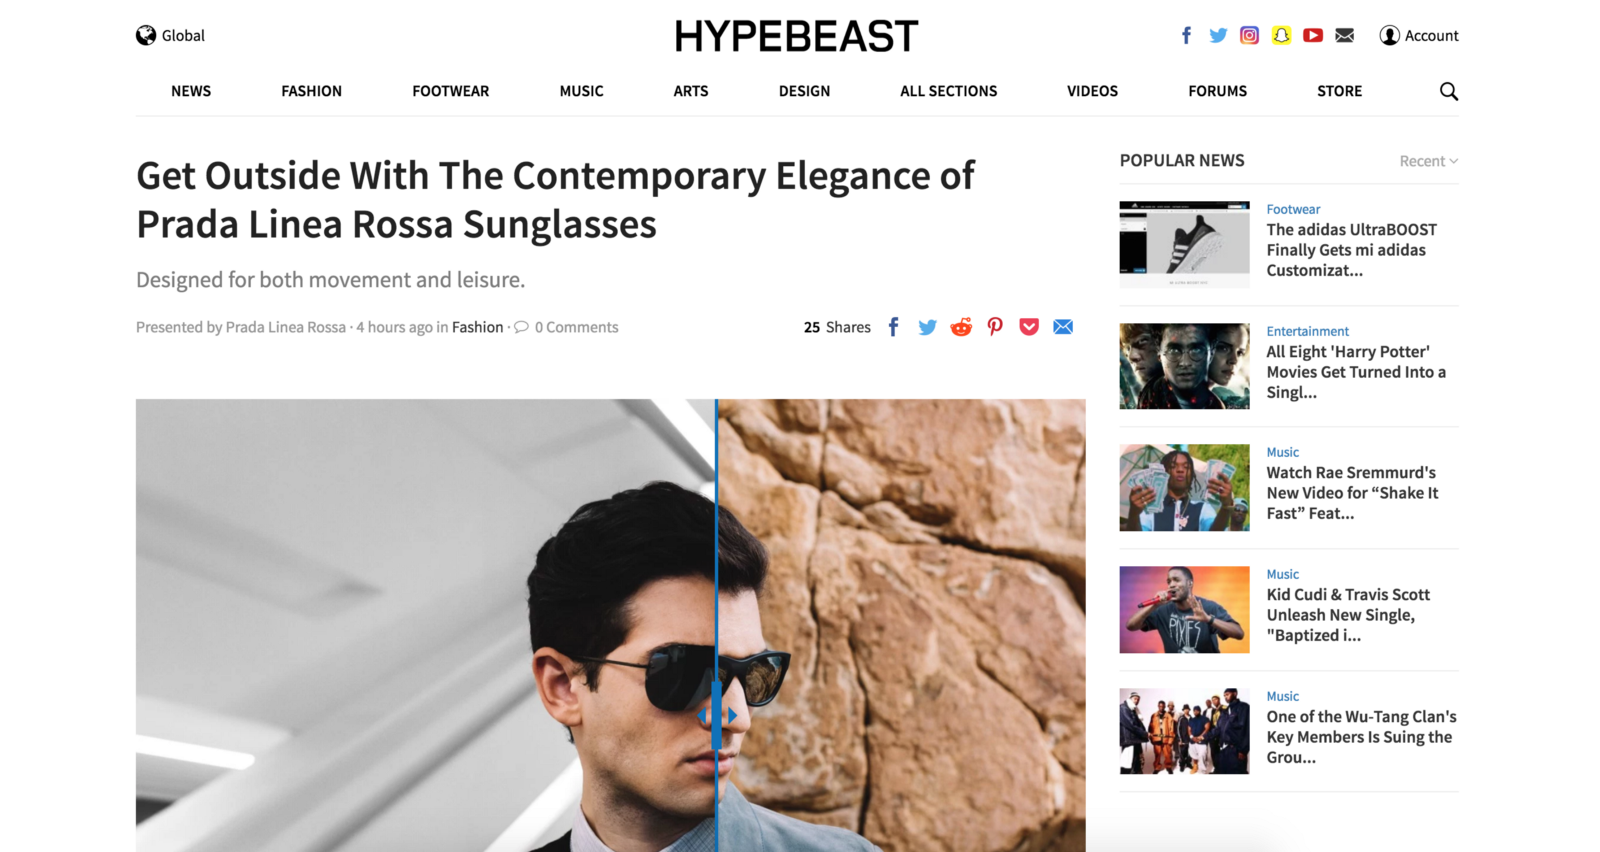 d887c48103e Figure 4  Example of Hypebeast.com posts showing the convergence of  different trends and cultures in one accessible site